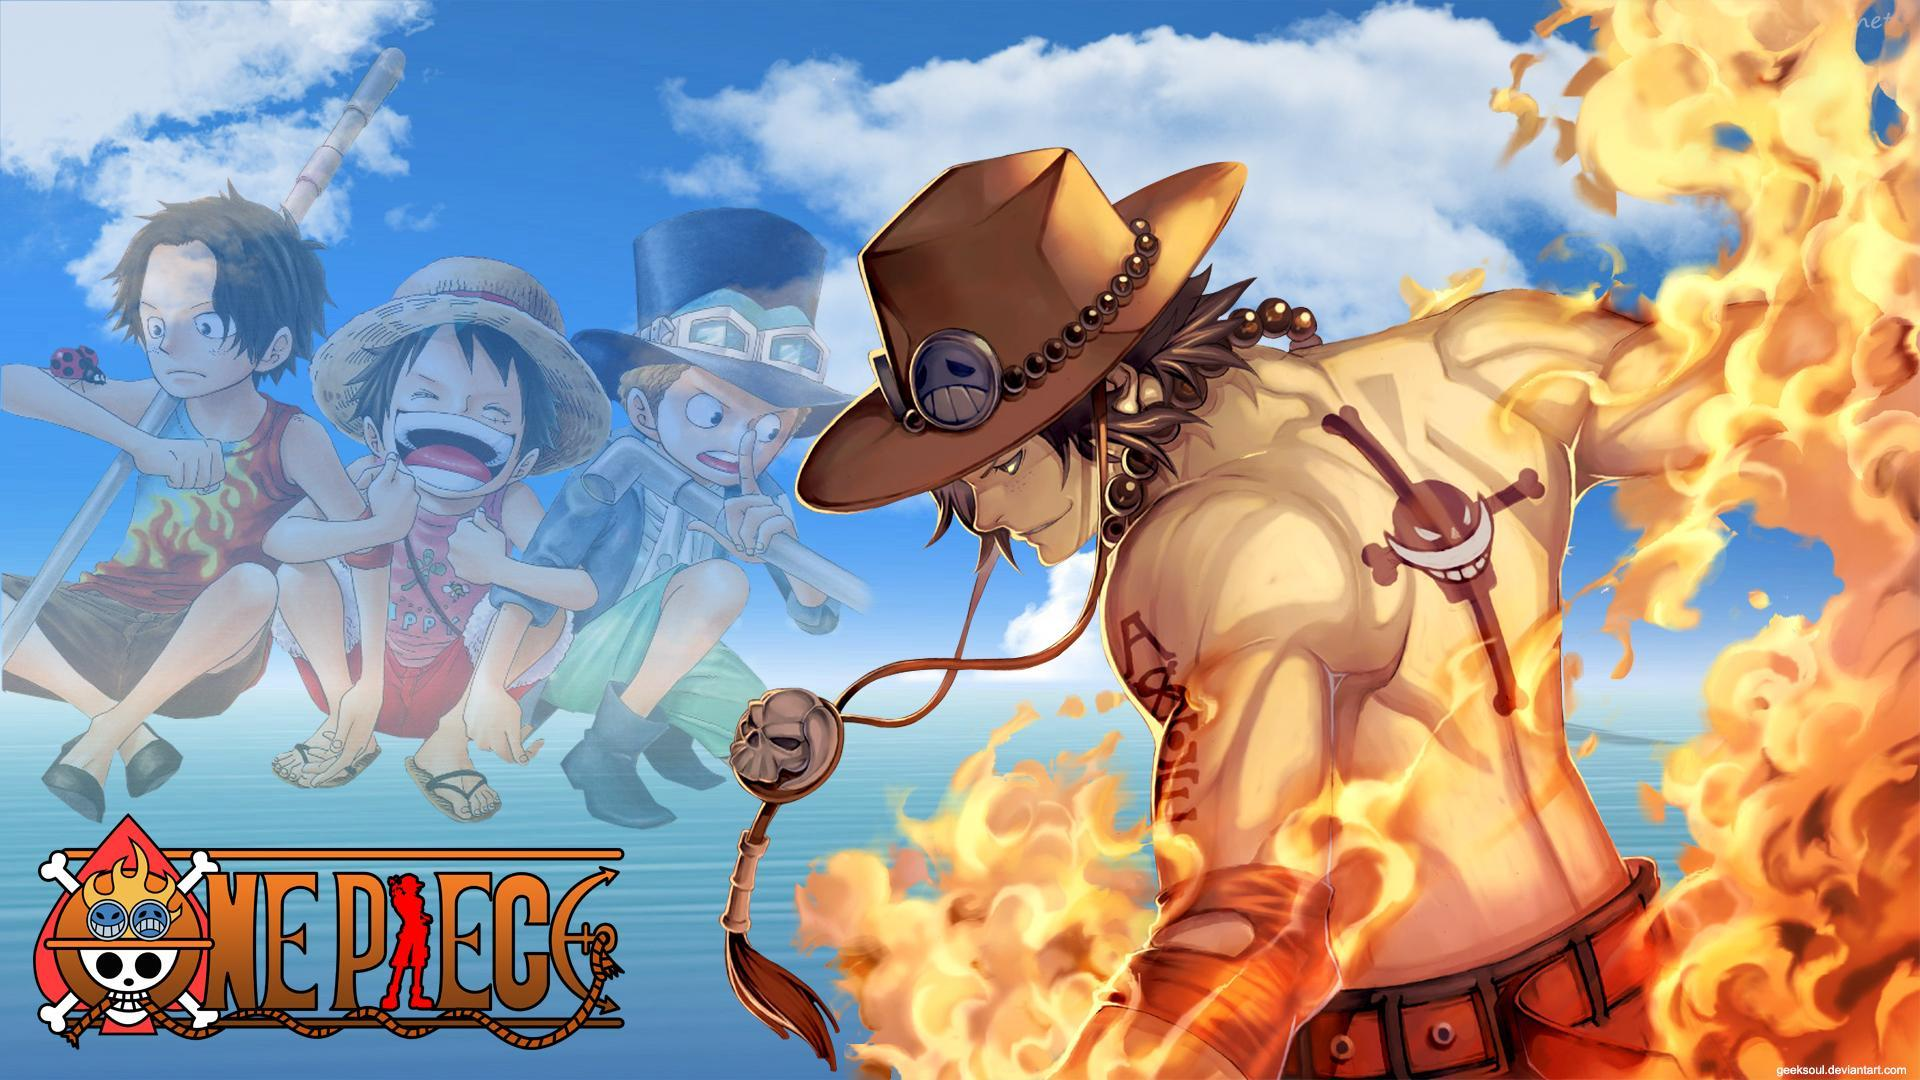 Naruto Boruto Bleach One Piece Wallpapers Hd 2018 For